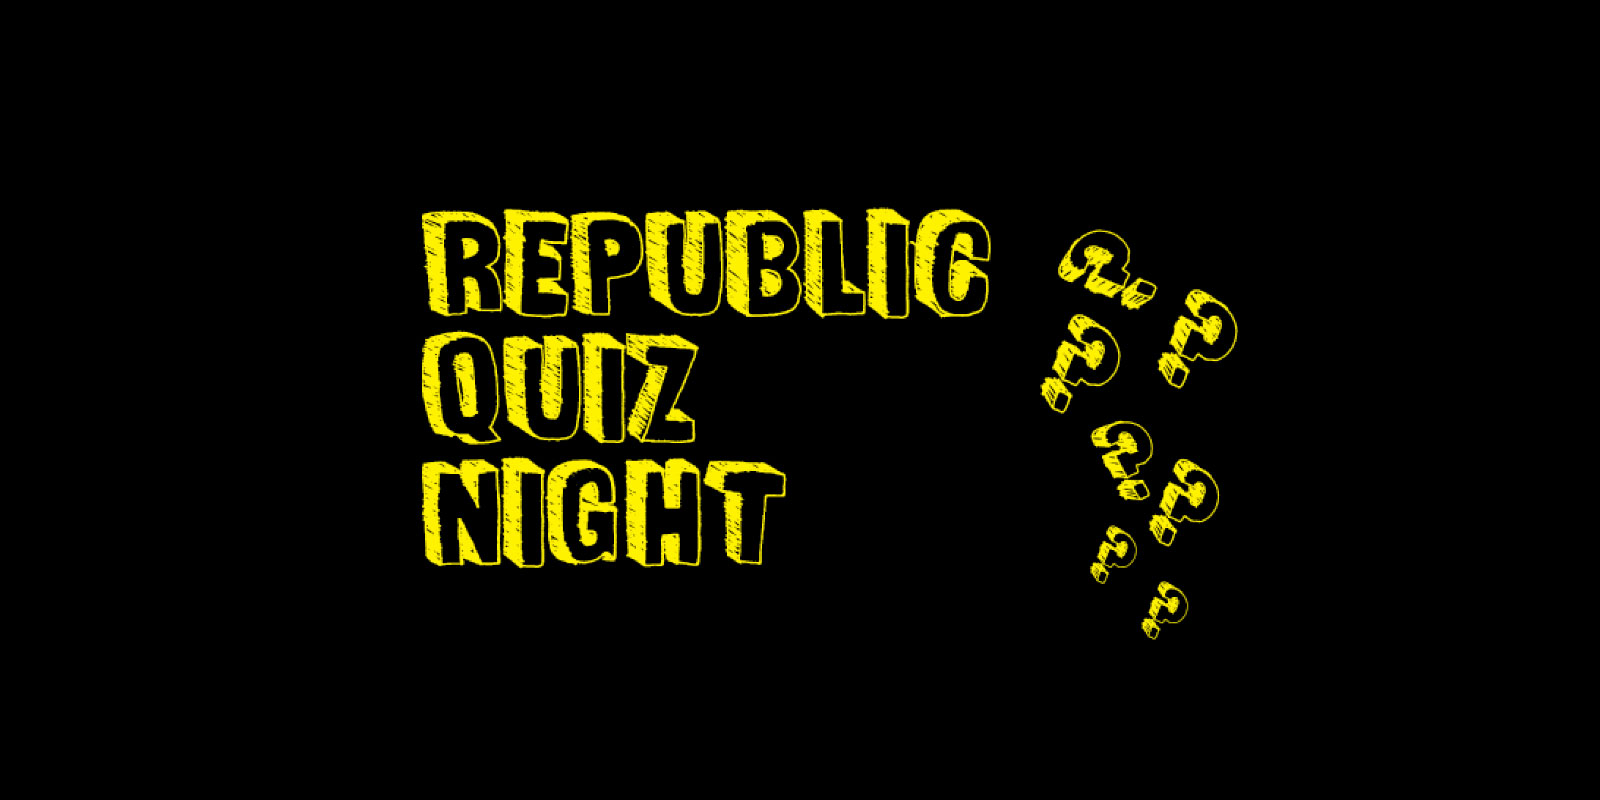 Republic Quiz Night Poster